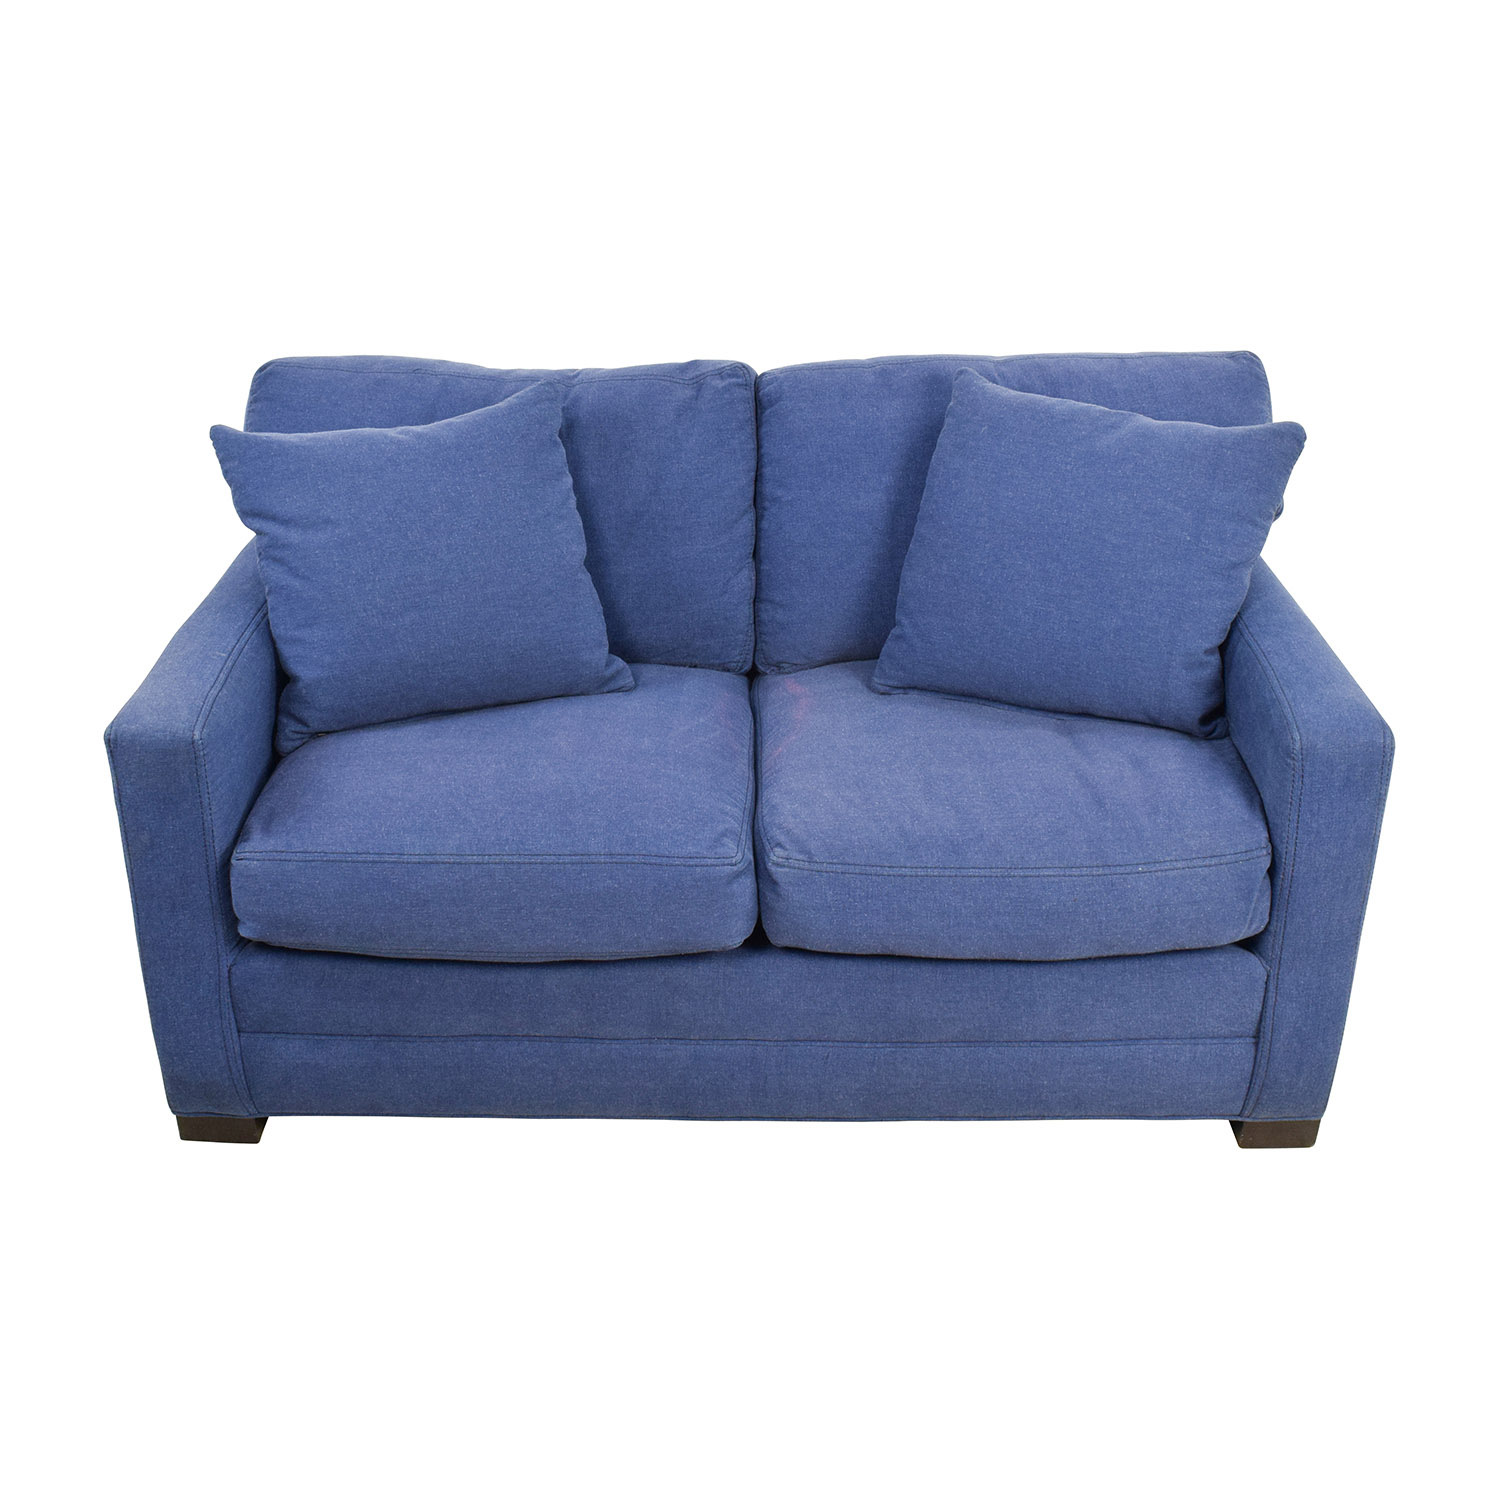 The Most Stylish As Well As Attractive Denim Loveseats Intended For Your Property